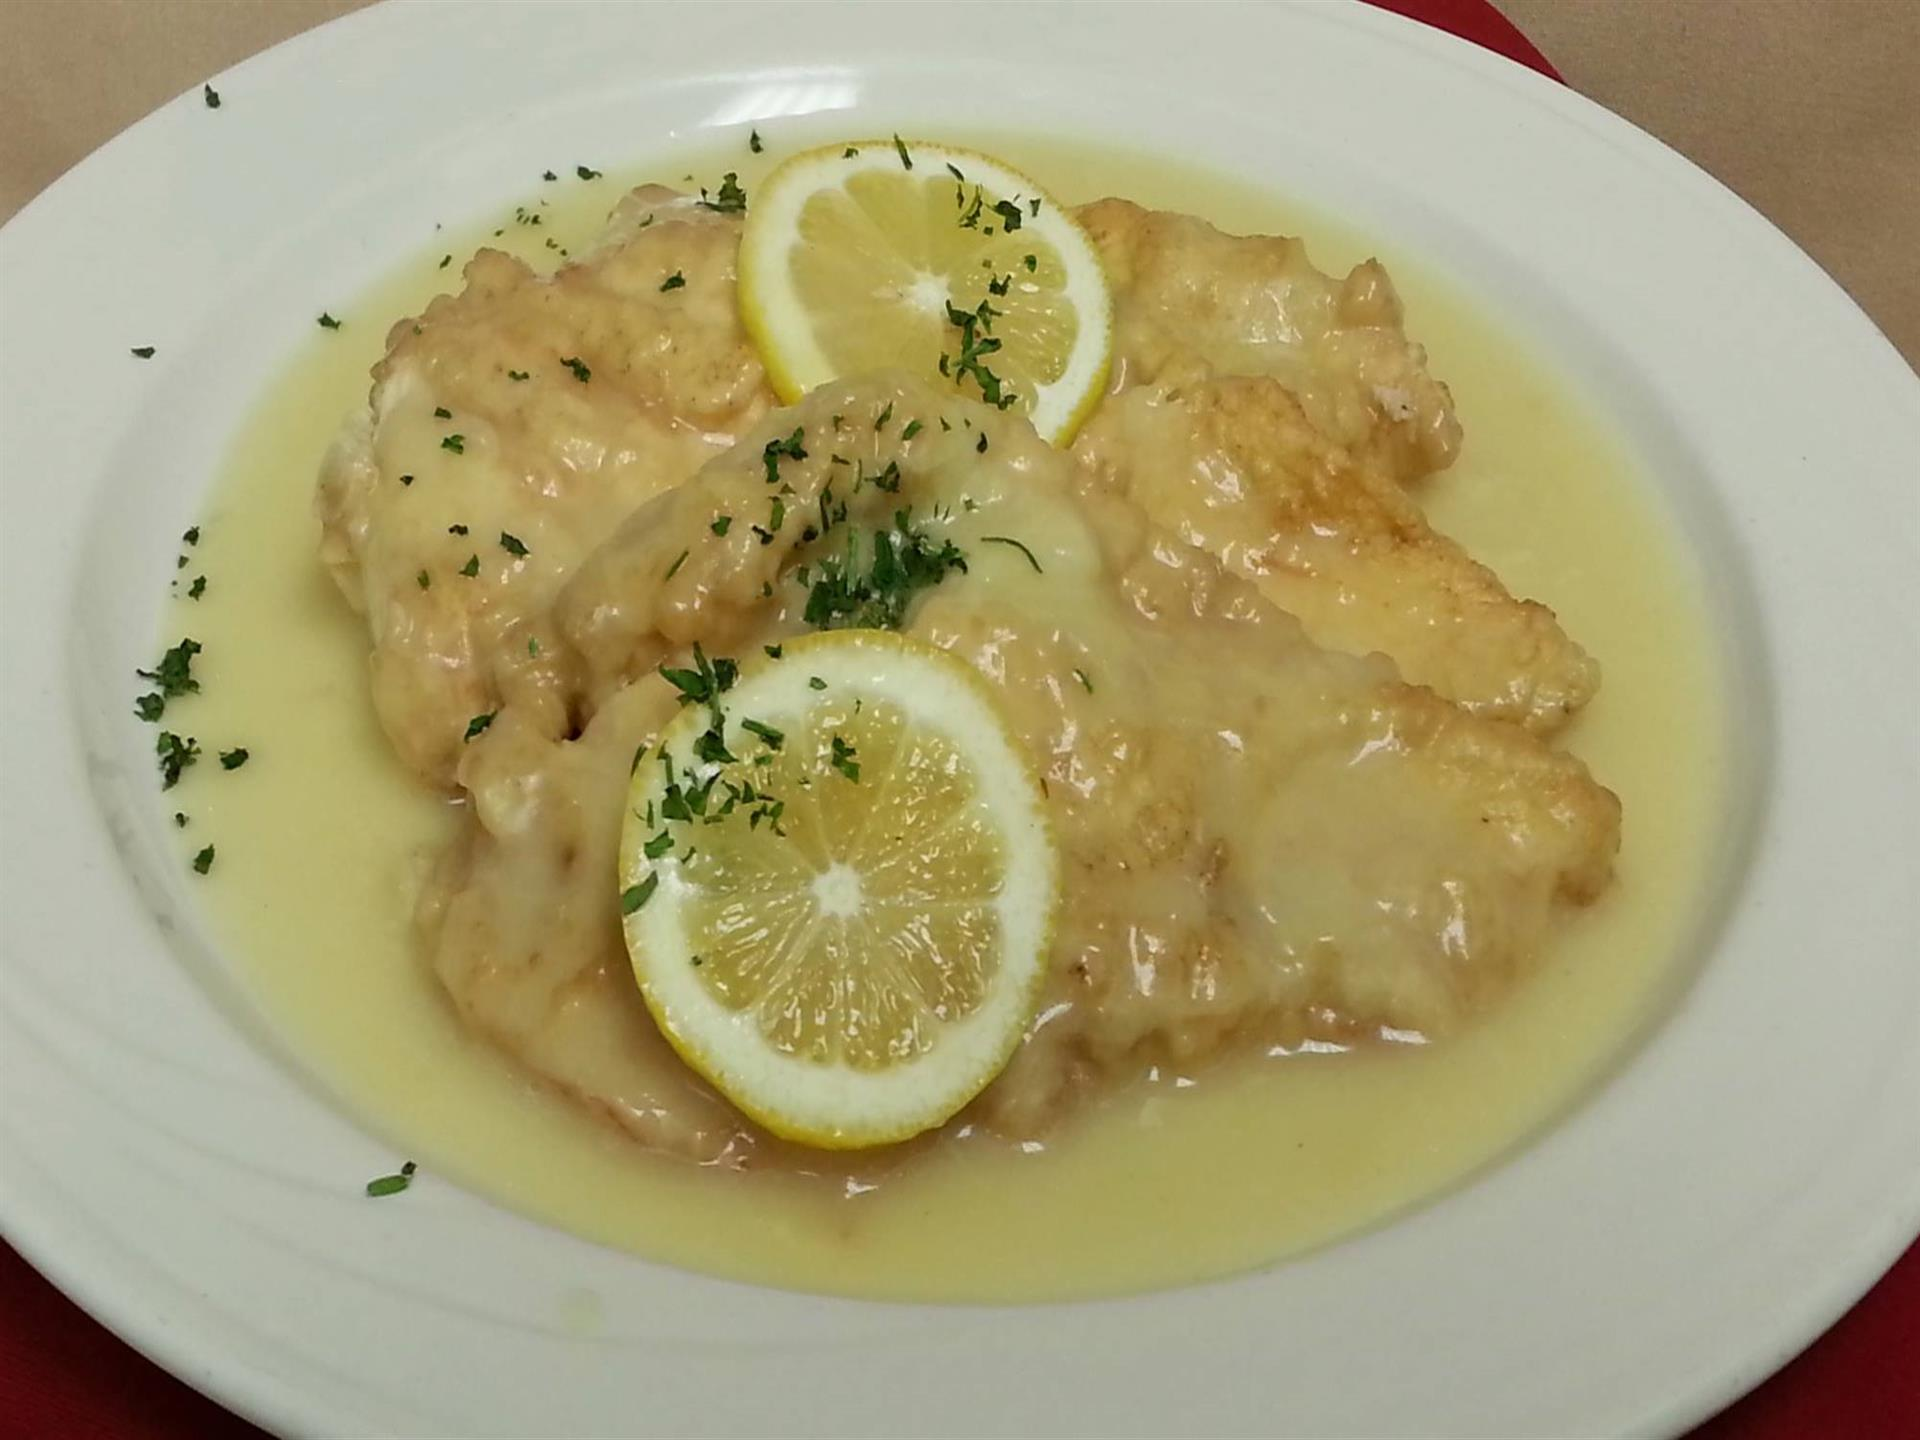 cooked chicken breats with sauce and lemon wedges